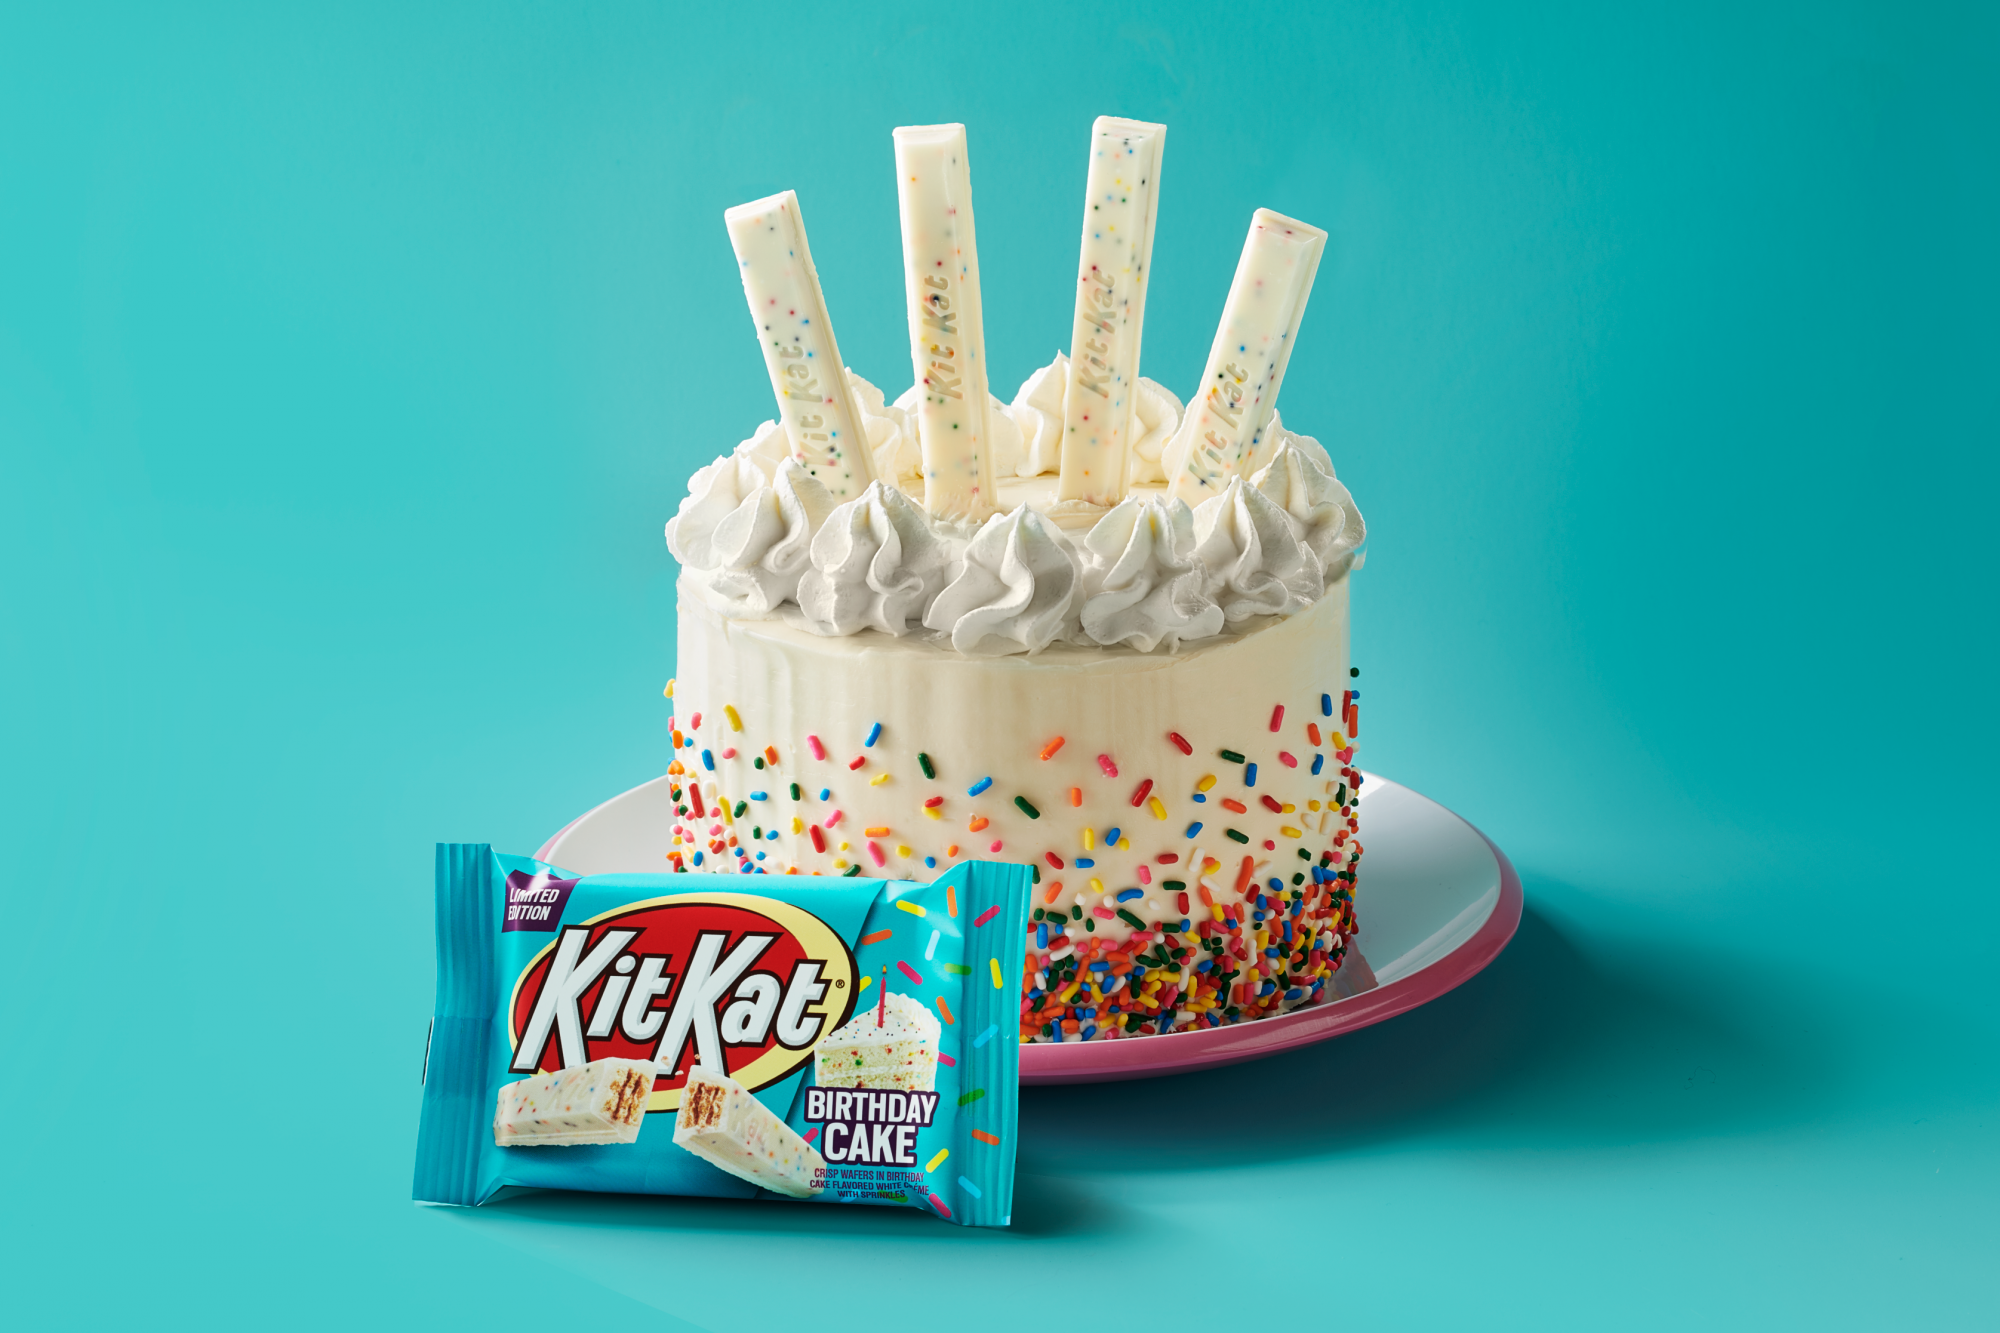 Kit Kat Birthday Cake Arrives This April — And We've Already Tried It